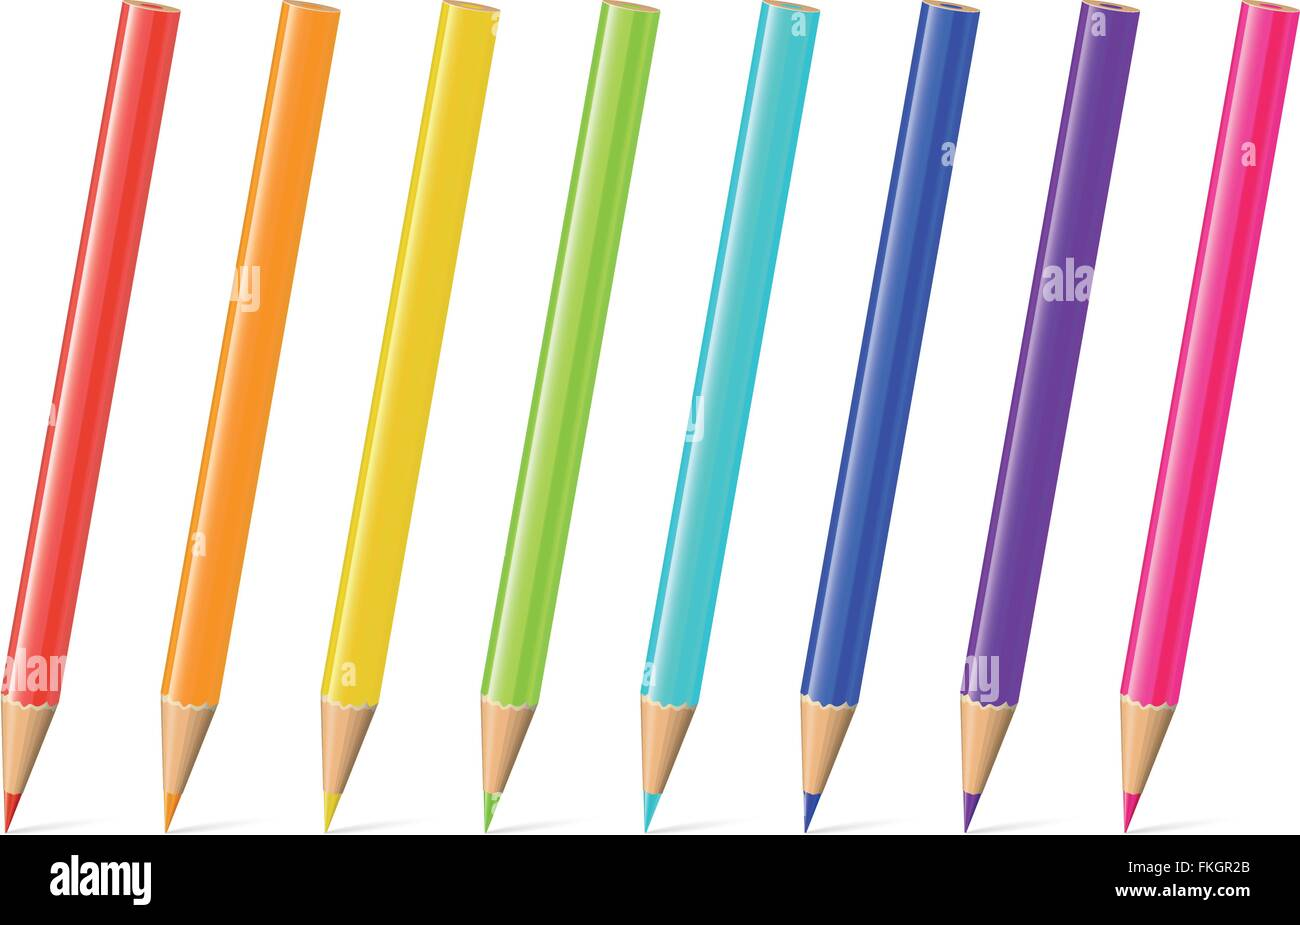 Set of eight pencils in rainbow colors. - Stock Image